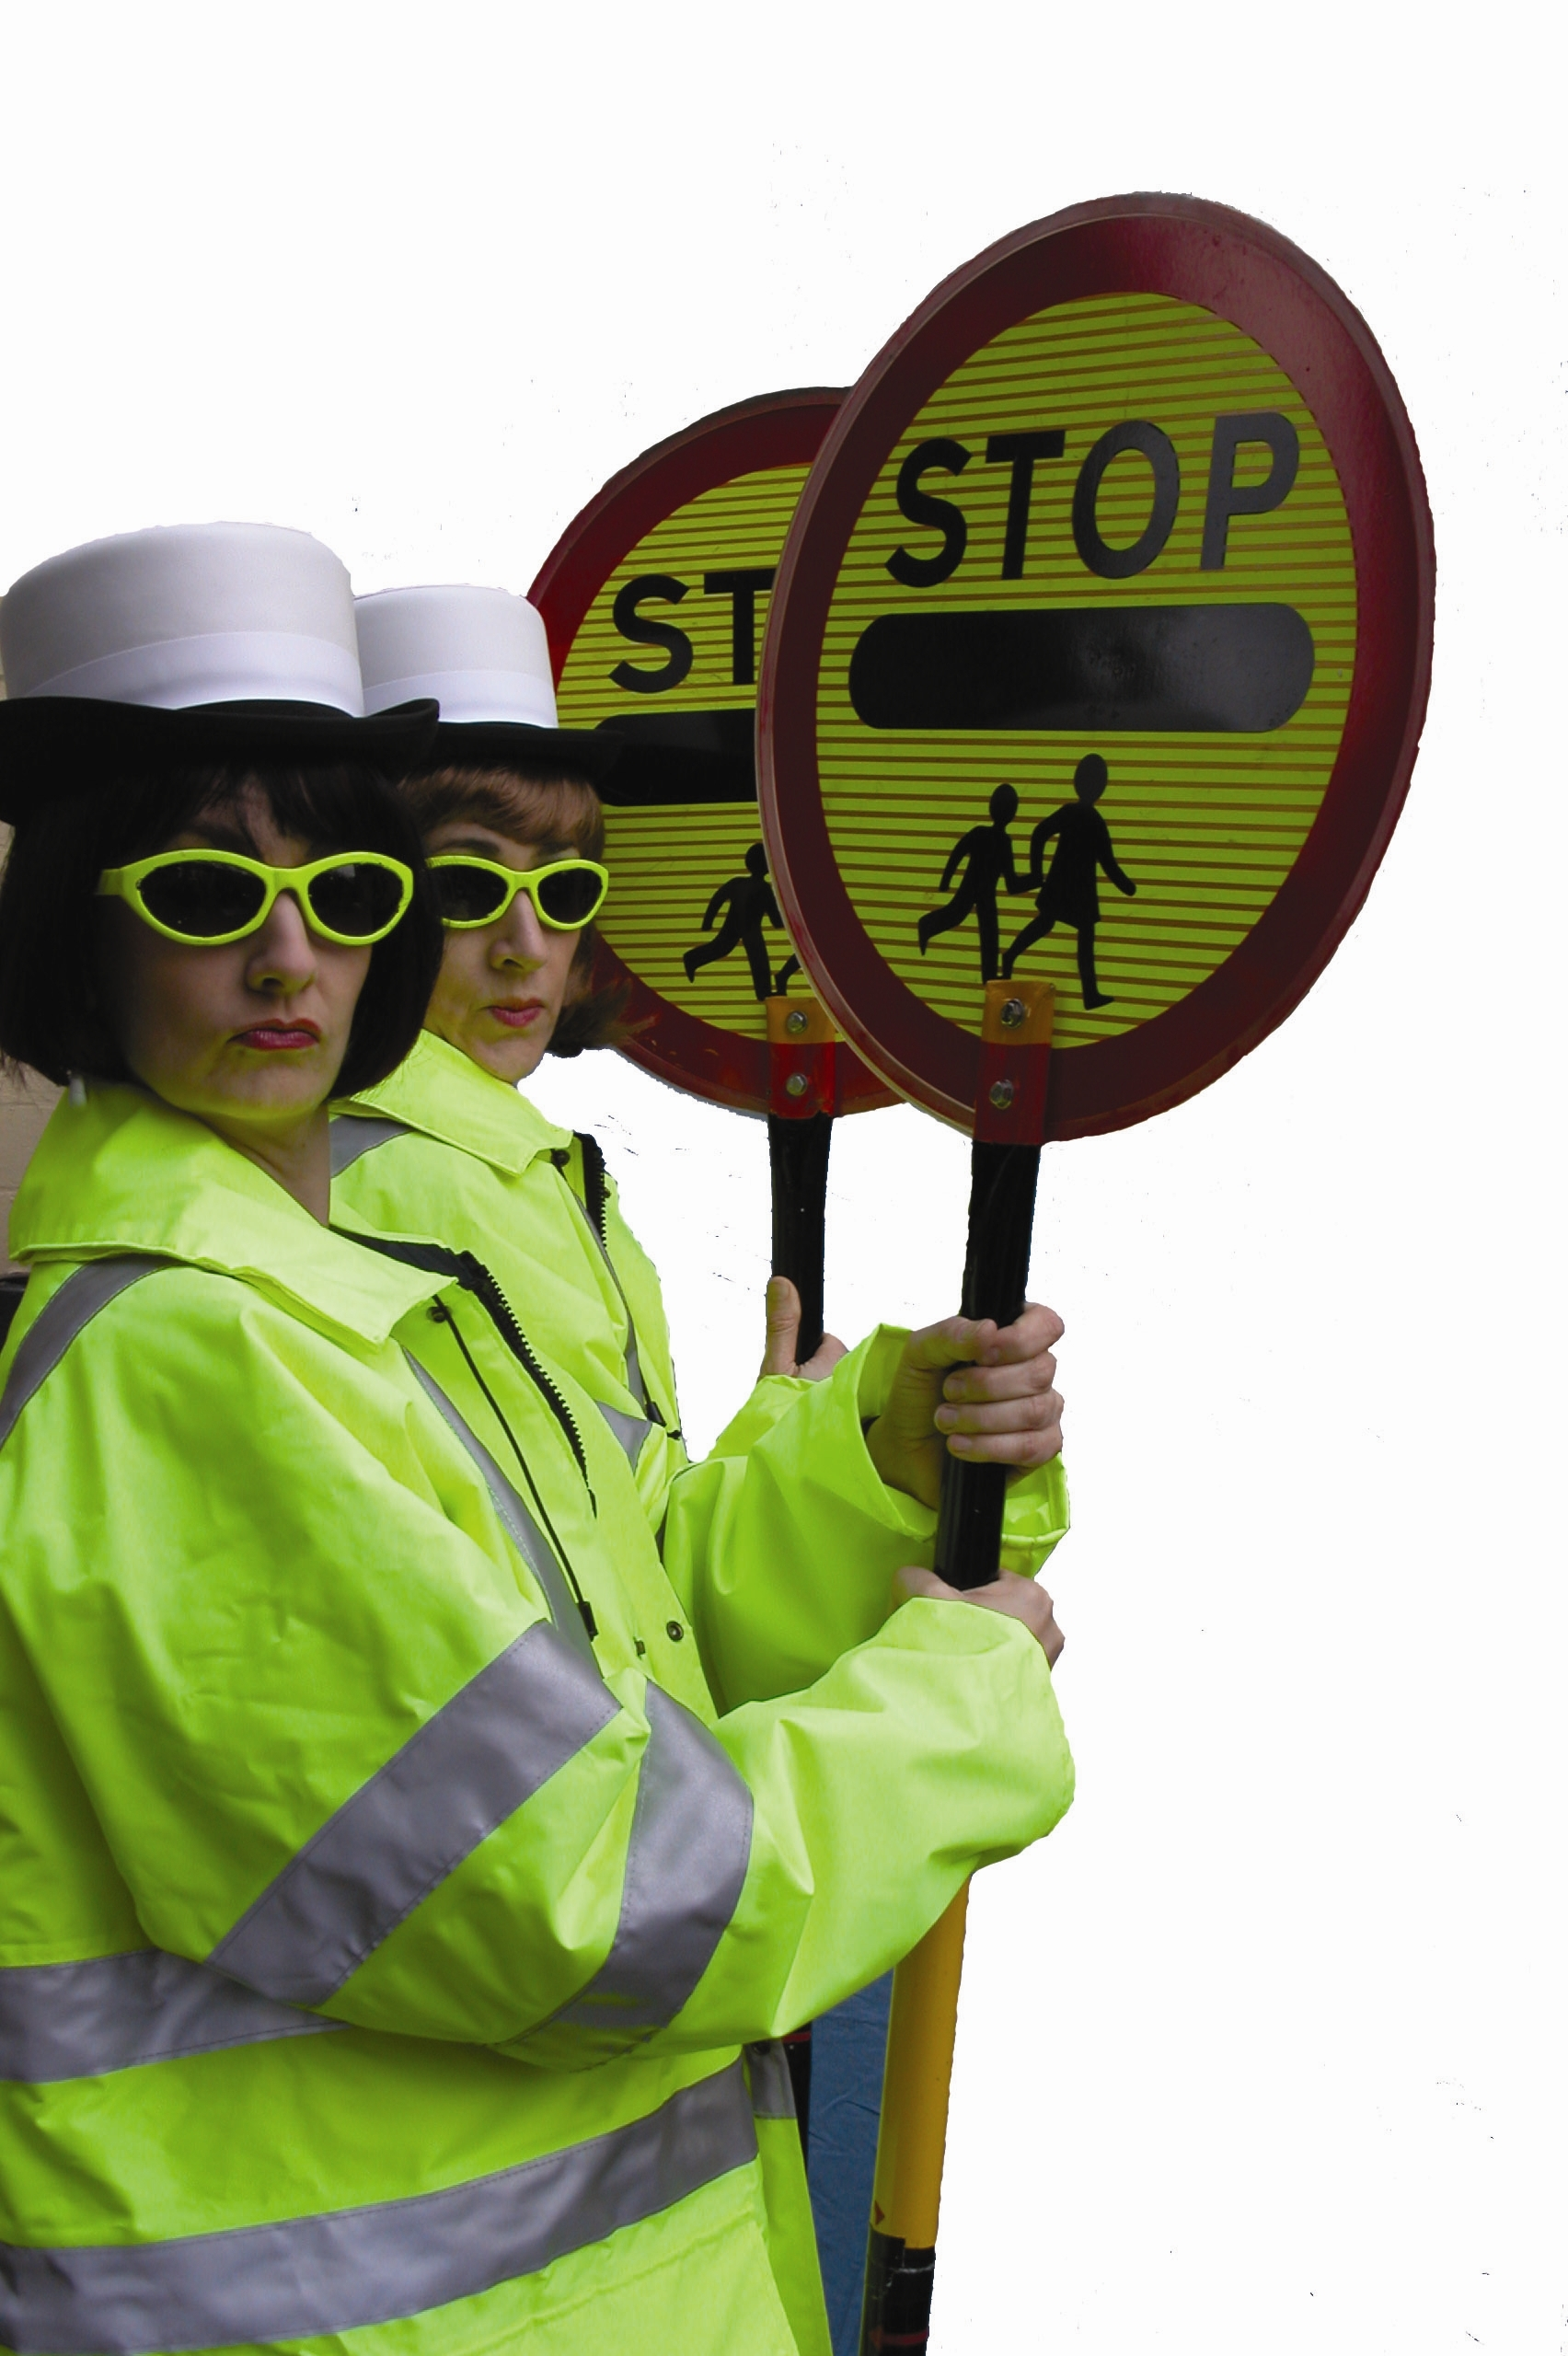 Lollipop patrol appearing at ninth annual Oldham Vintage Car show